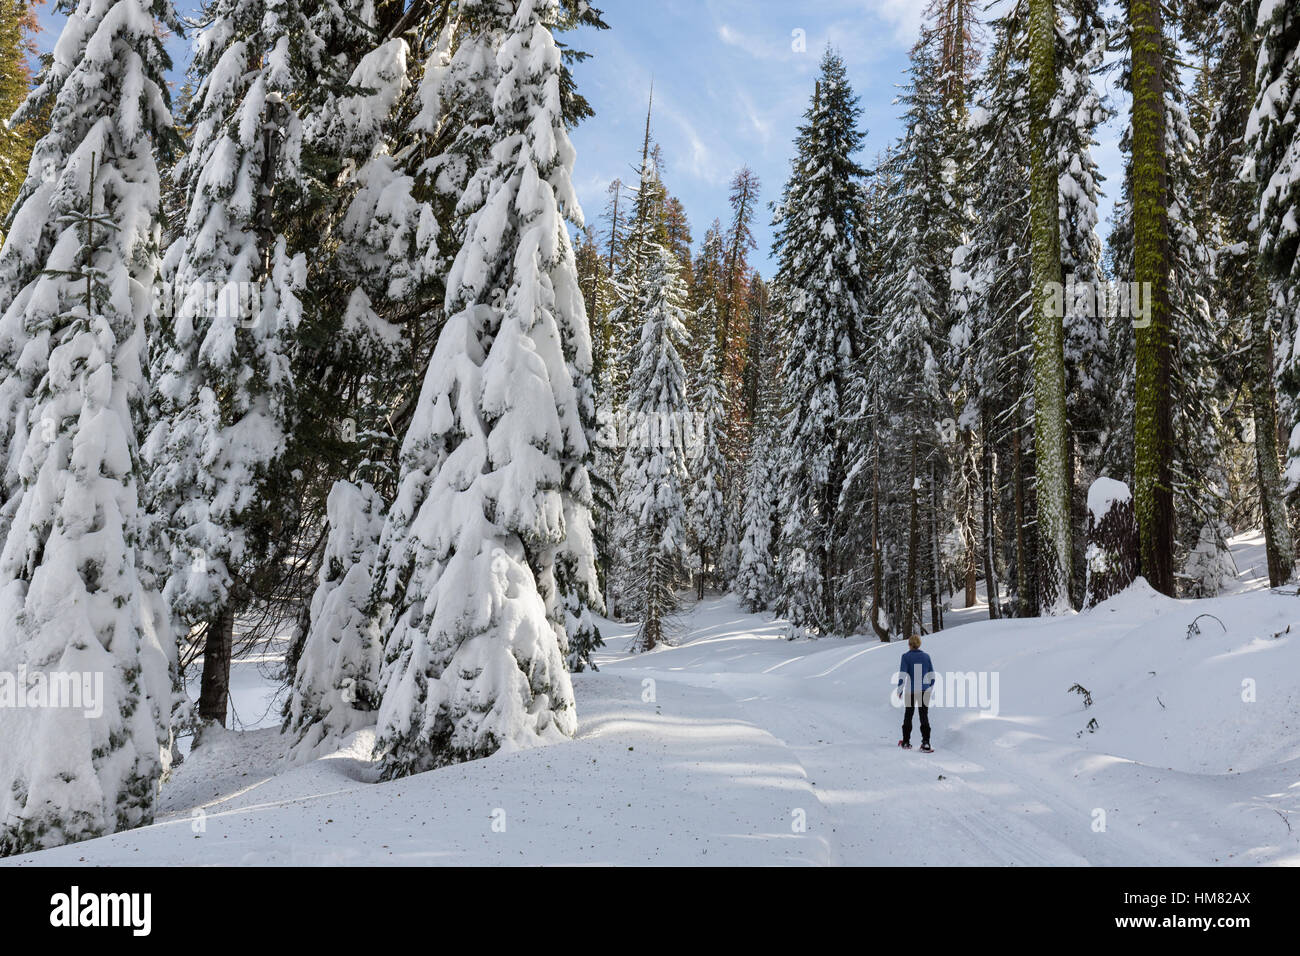 A woman snowshoes along a snow-covered winter trail in Kings Canyon National Park. Stock Photo